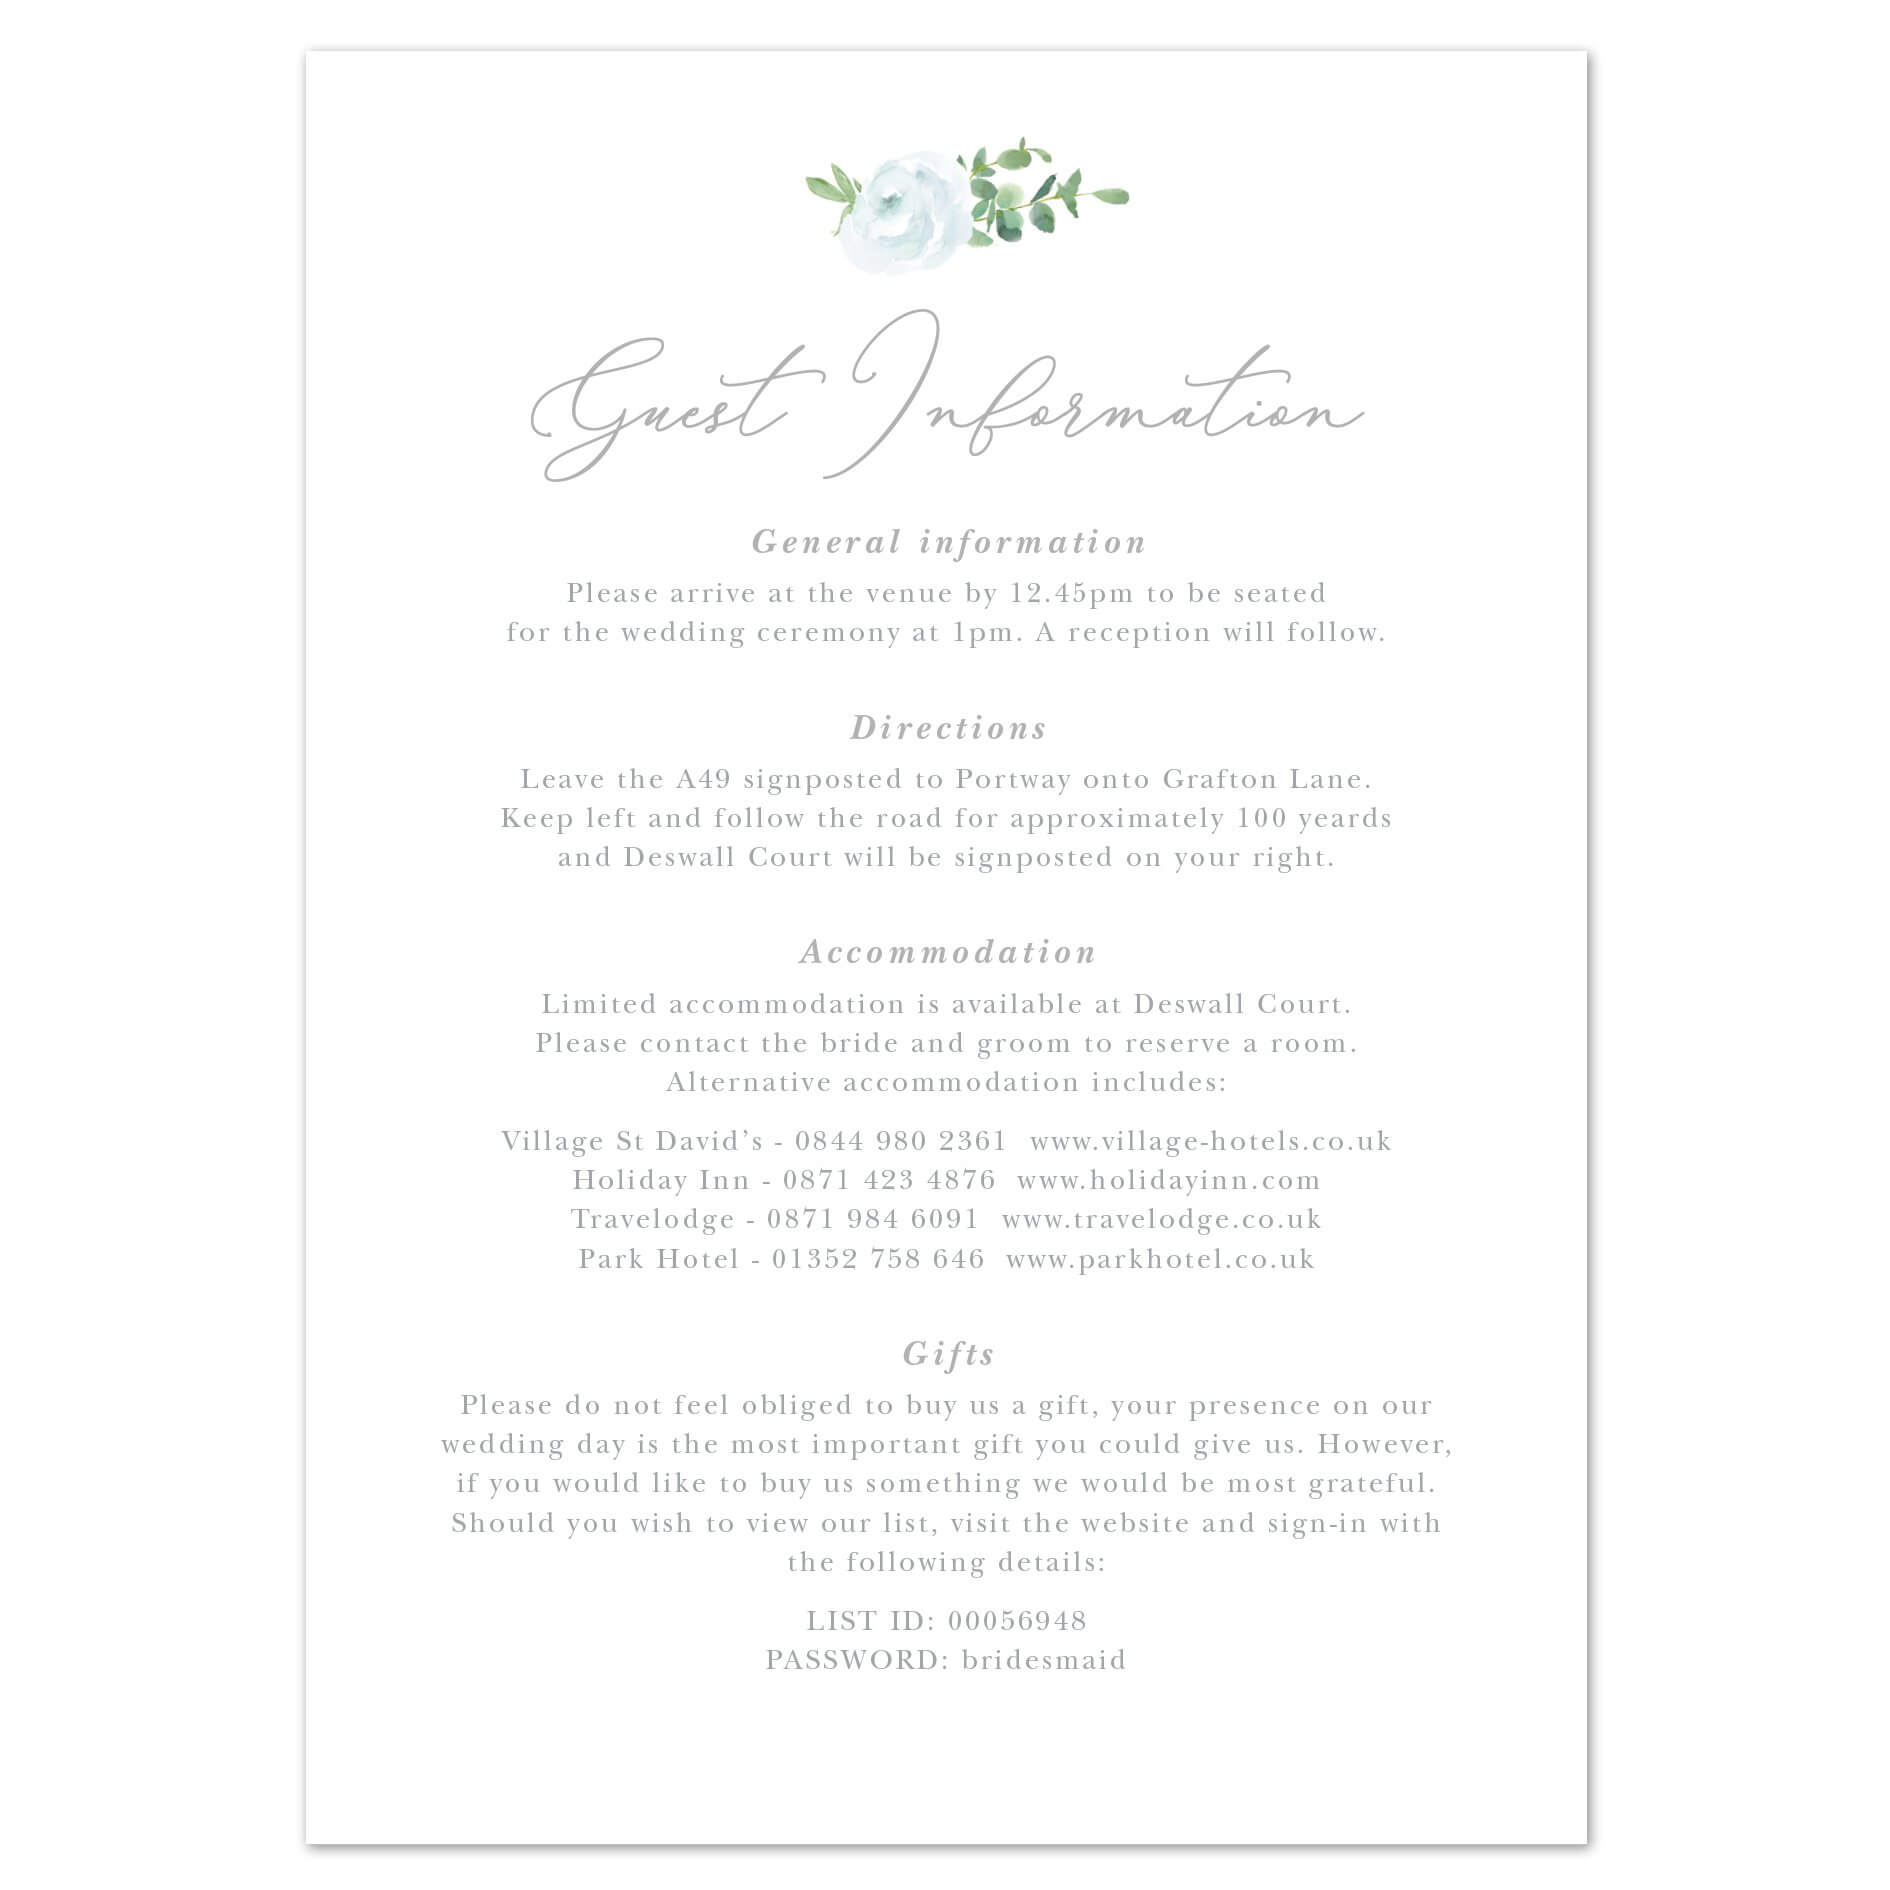 022 Wedding Registry Card Template Ideas Information Cards Within Wedding Hotel Information Card Template